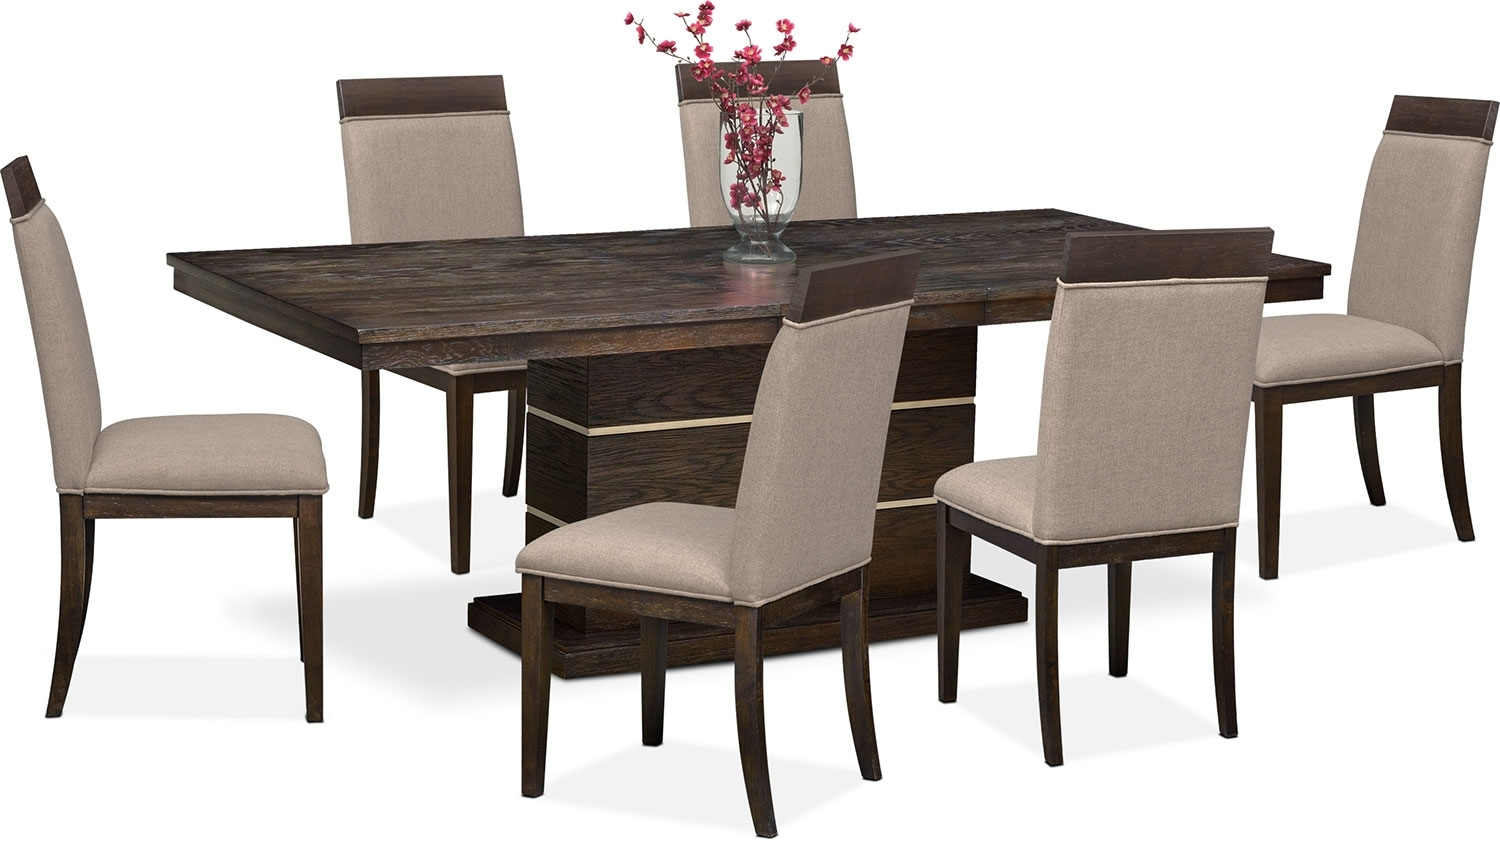 Gavin Pedestal Table And 6 Side Chairs – Brownstone | American Pertaining To Most Current Gavin 6 Piece Dining Sets With Clint Side Chairs (Image 6 of 20)